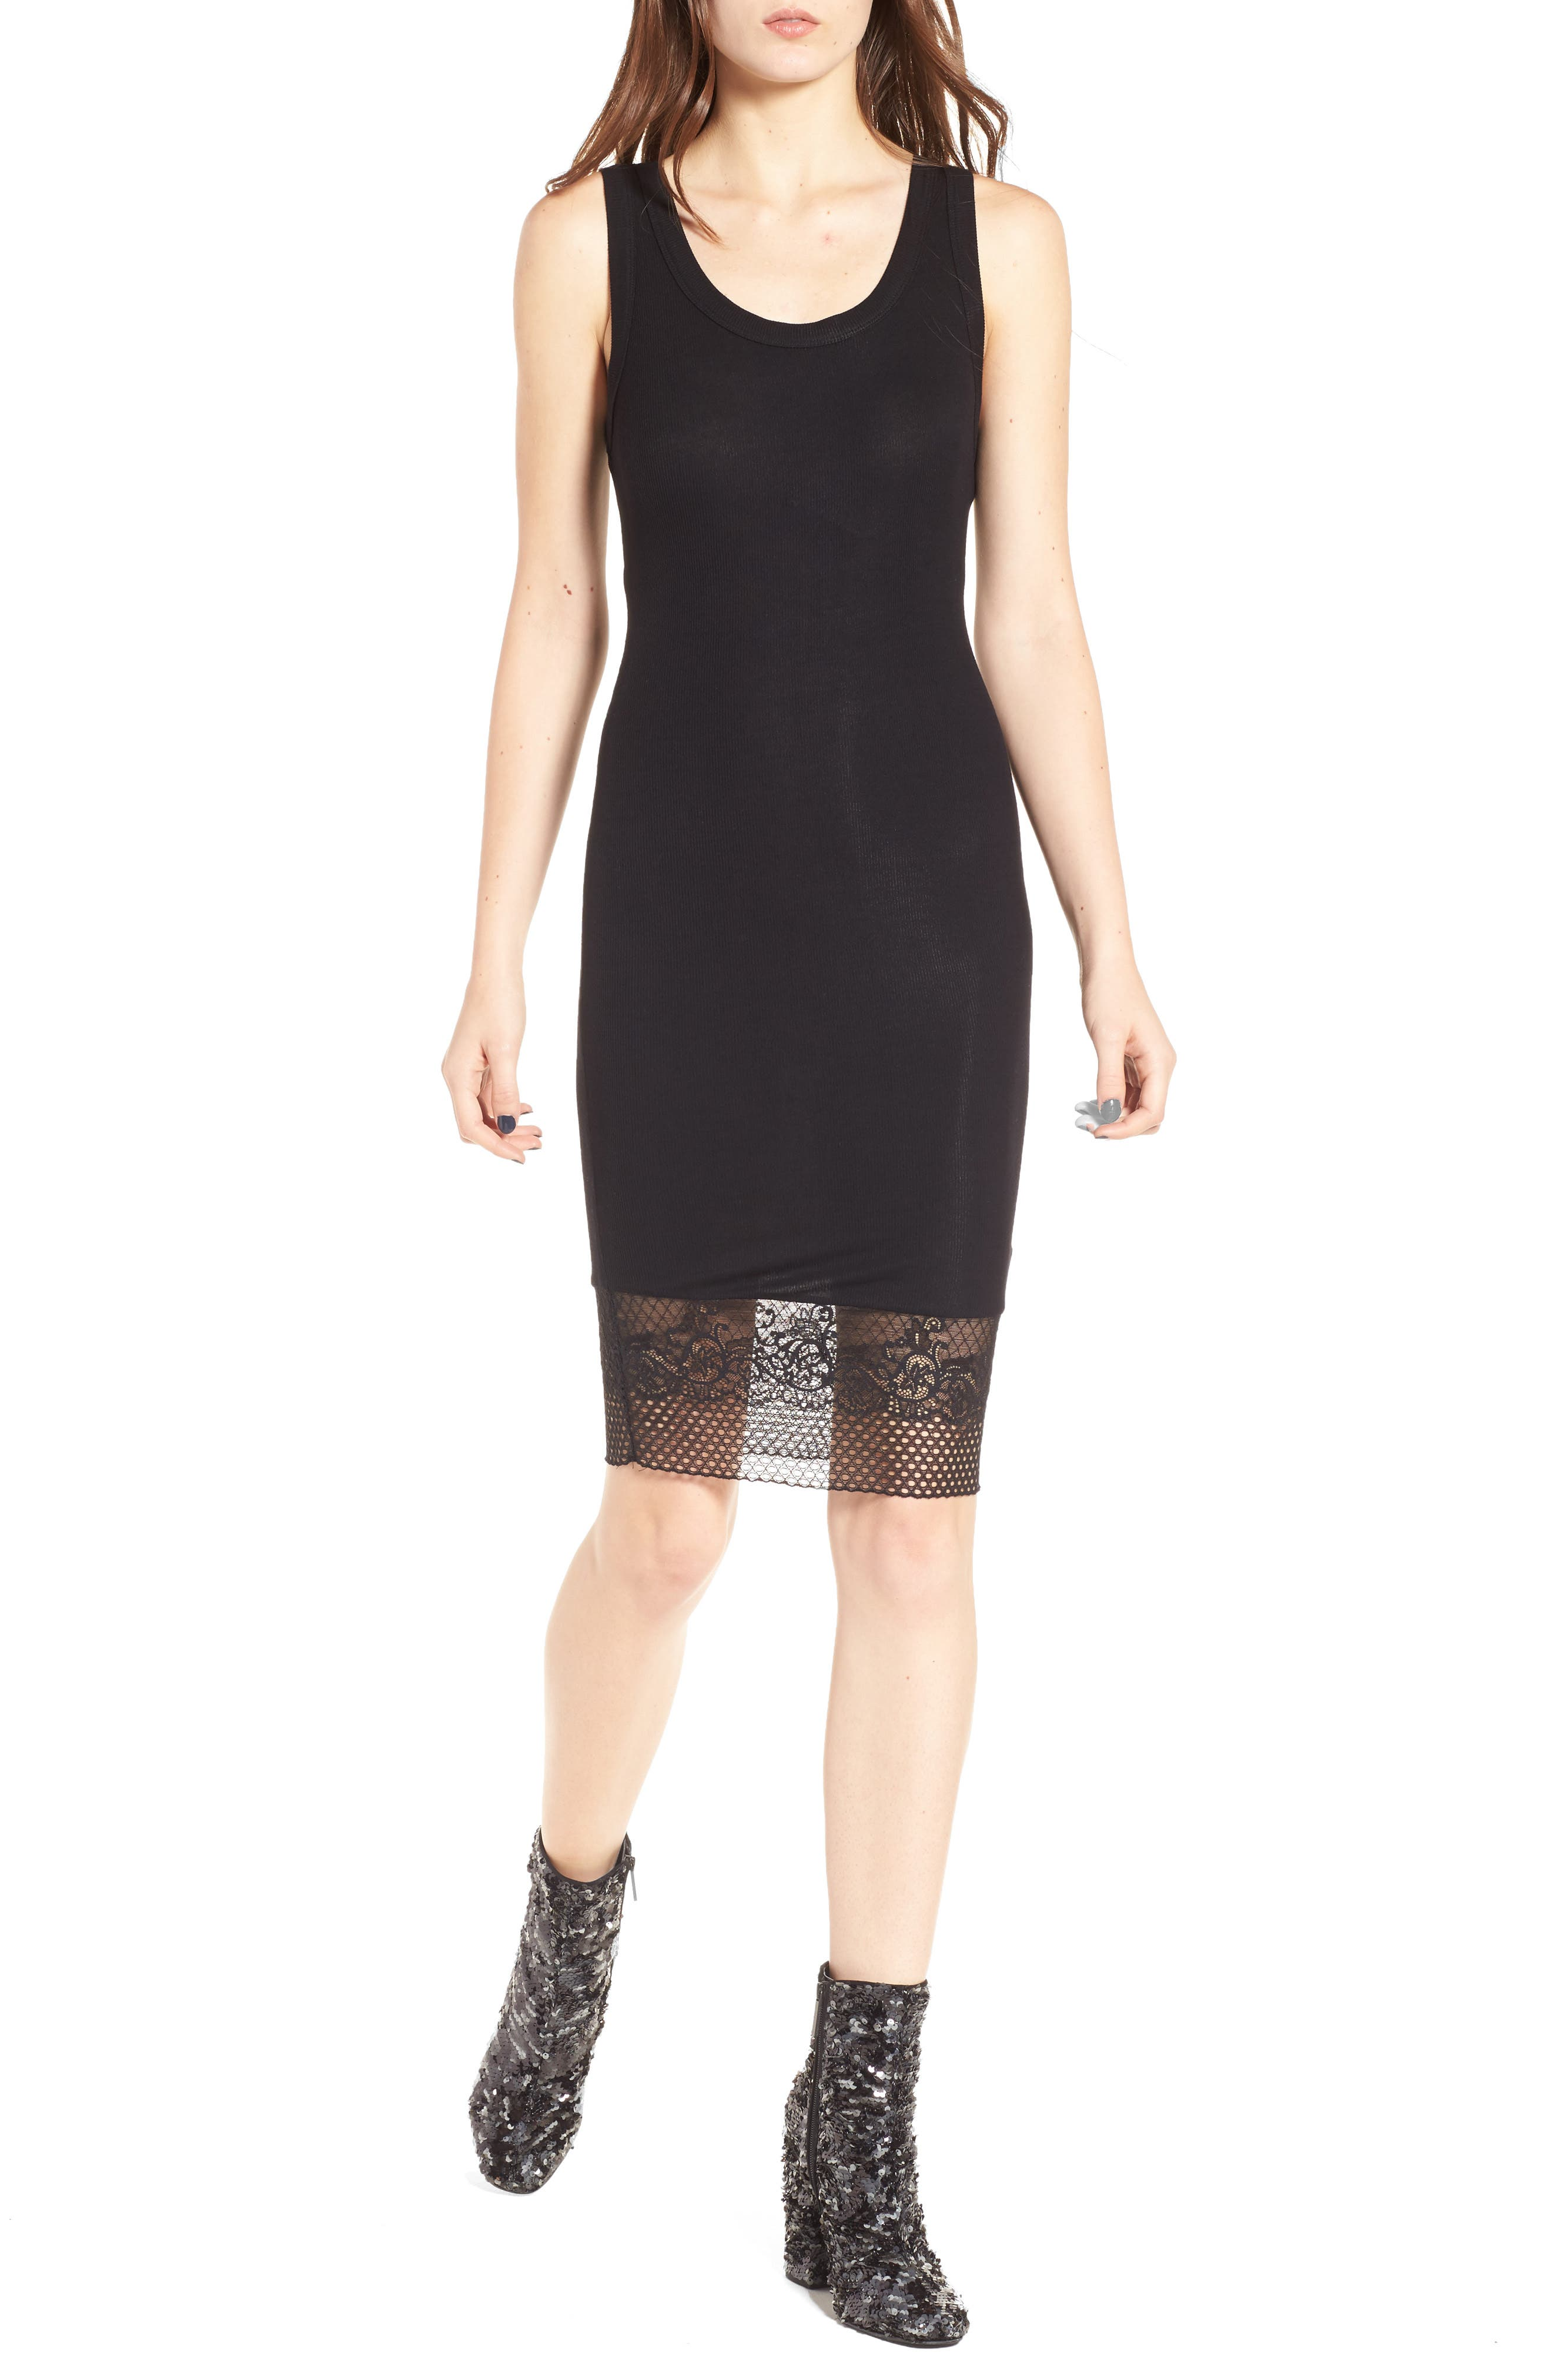 Alternate Image 1 Selected - KENDALL + KYLIE Lace Hem Tank Dress